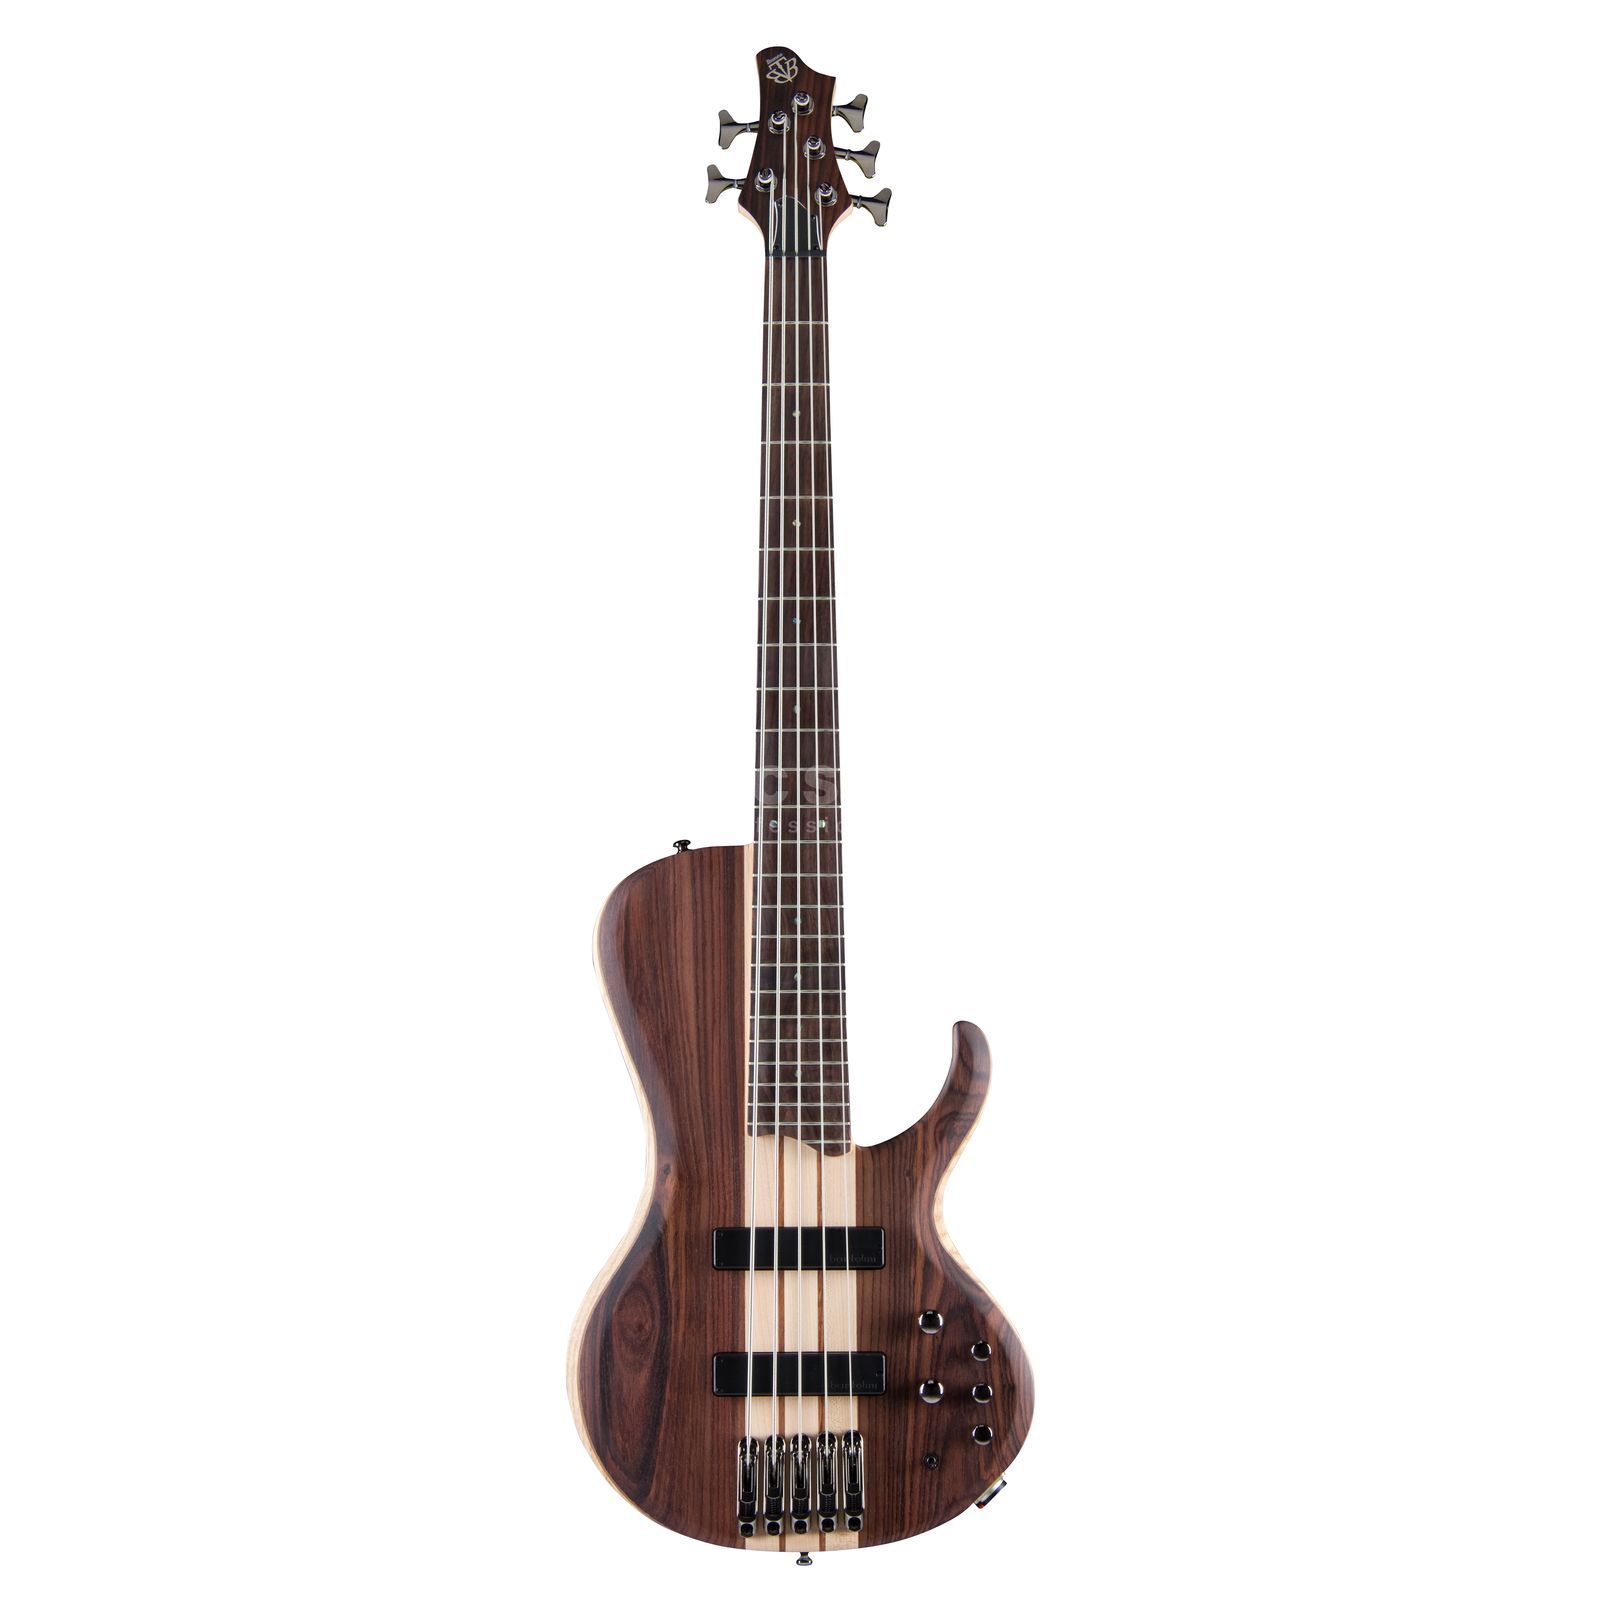 Ibanez BTB 685 SC NTF Natural Flat Product Image